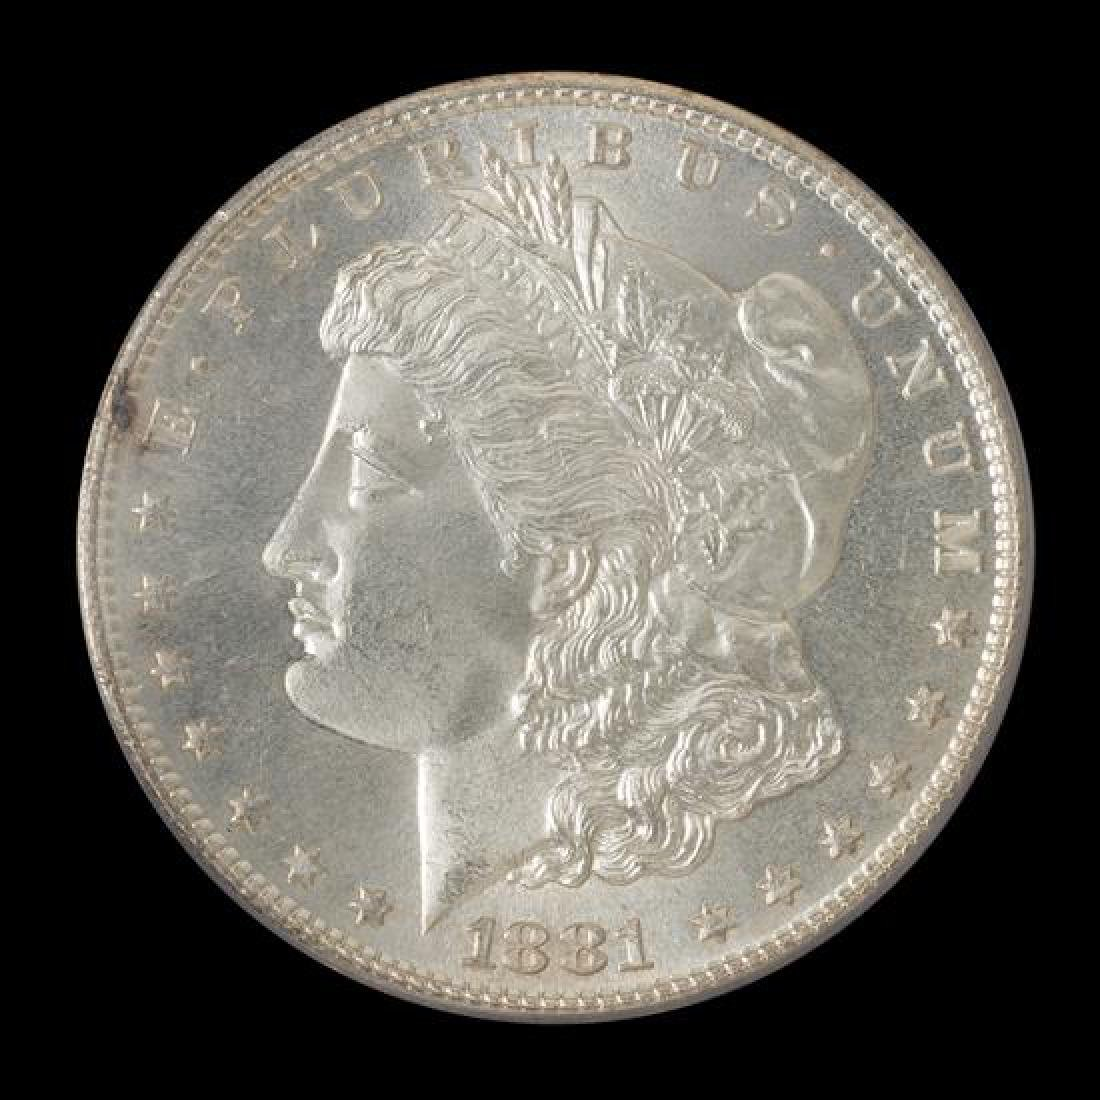 A United States 1881-S Morgan Silver Dollar Coin